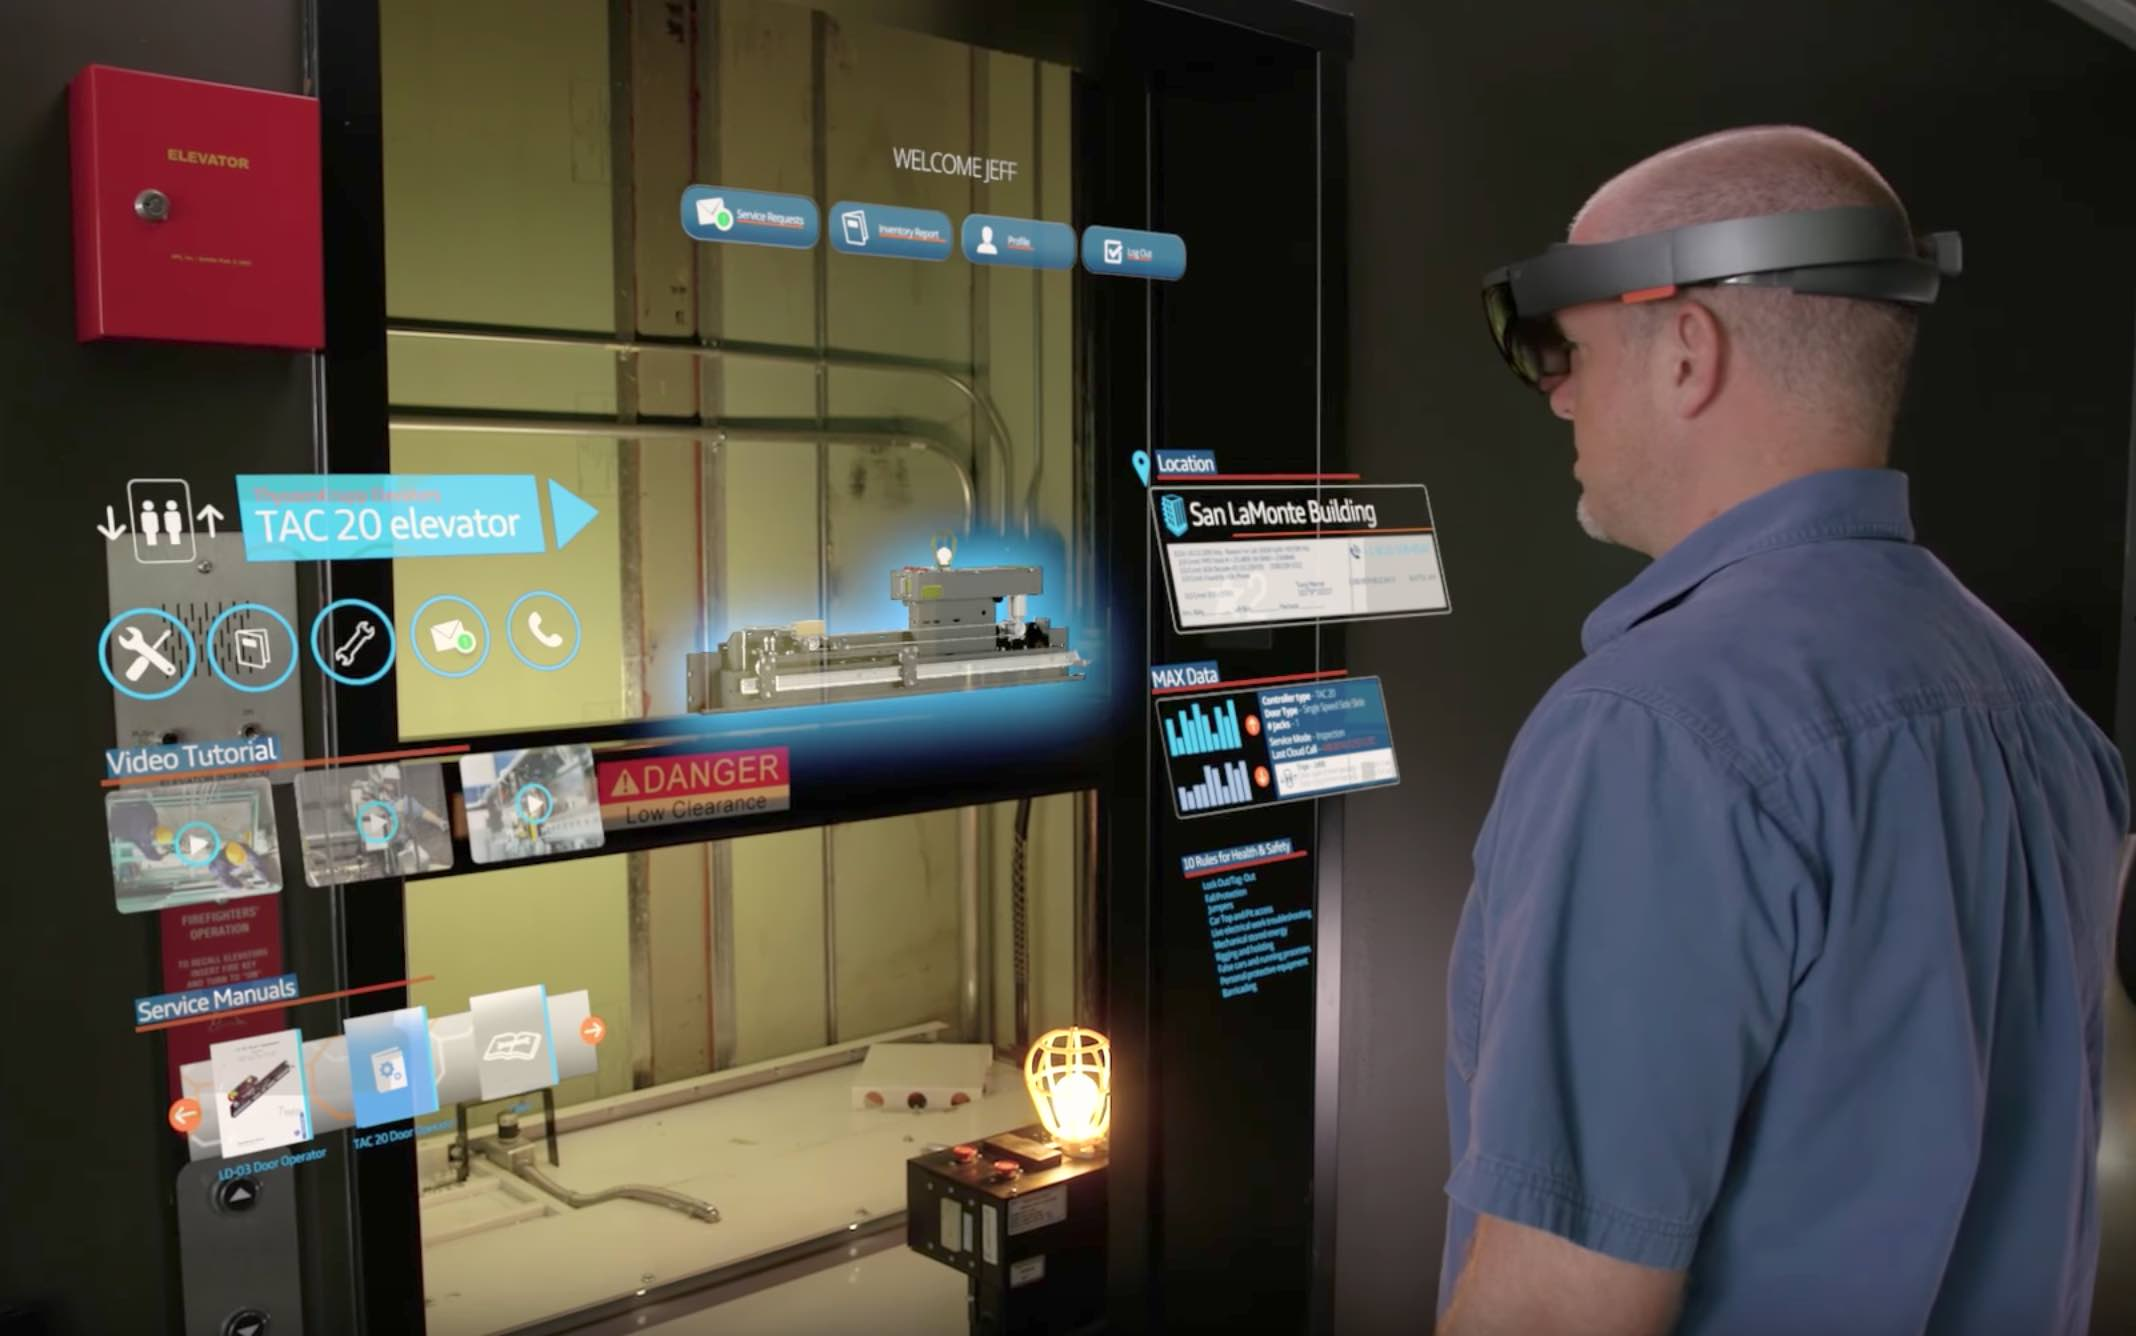 5 ways Augmented Reality will change our lives